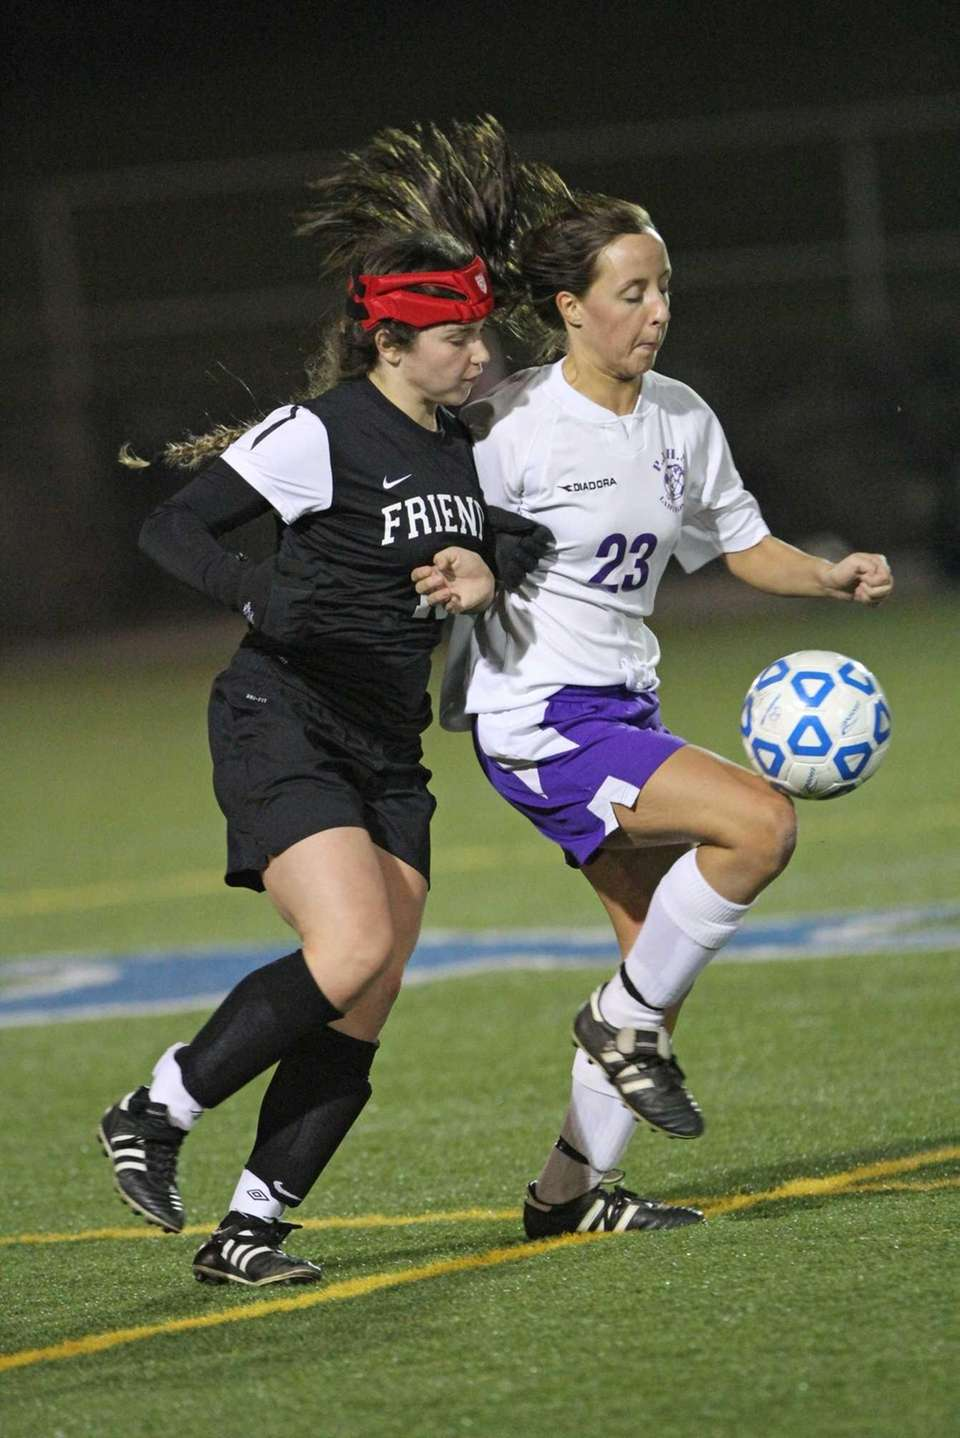 Friends Academy's Kasey Katz and Port Jefferson's Katherine